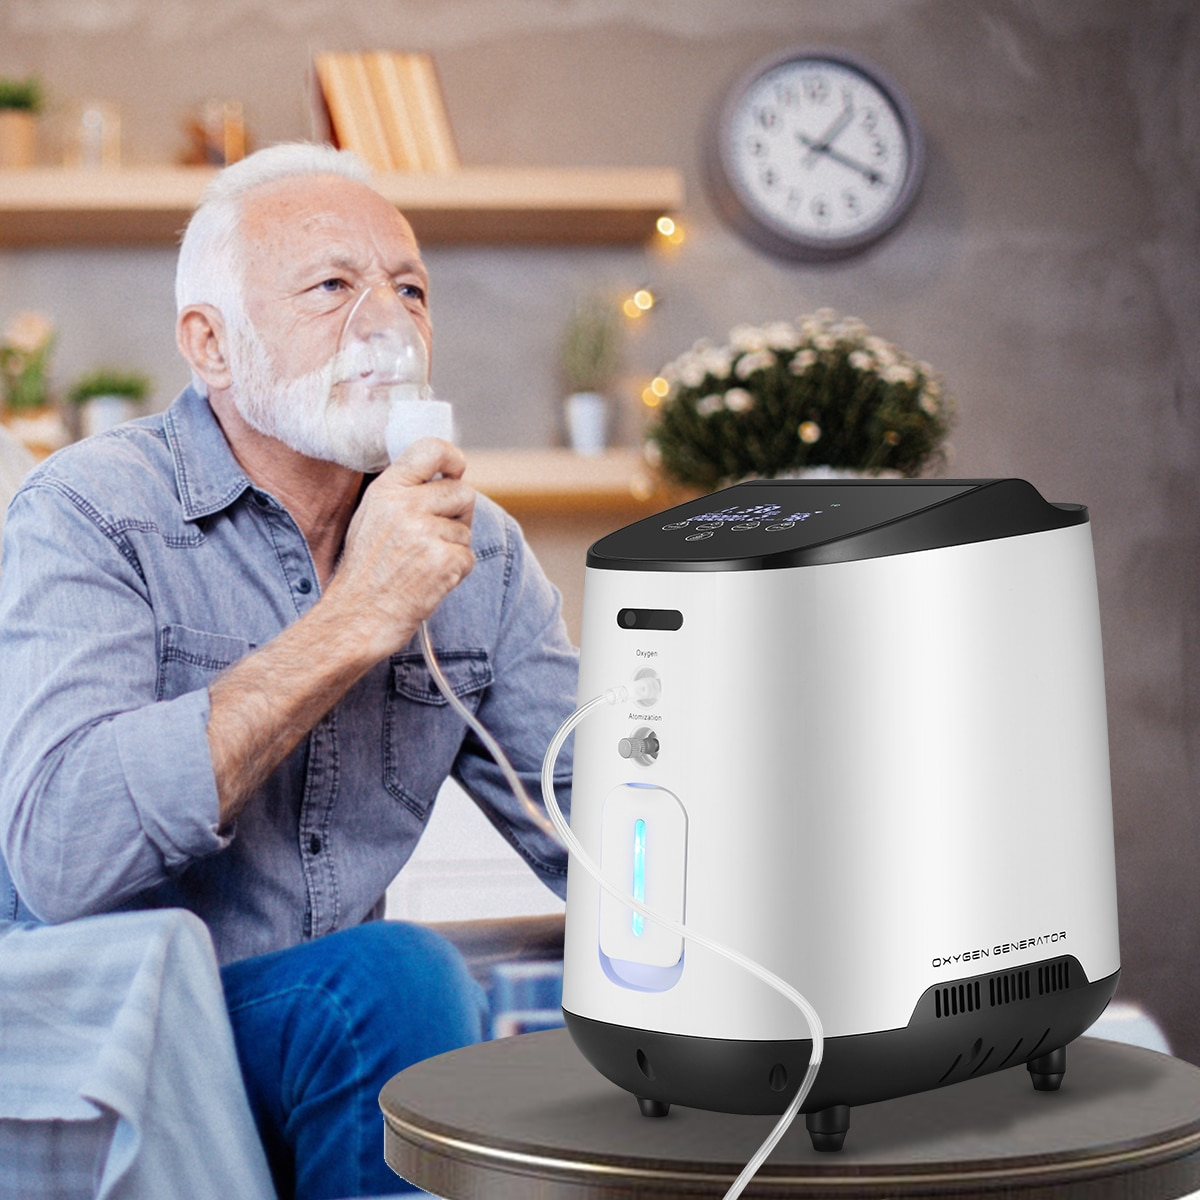 1 6l min portable oxygen concentrator home travel use generator no battery air purifier for home with handle 24 hours working AUPORO Portable Oxygen Concentrator Oxygen Generator 1-7L Oxygen Making Machine Without Battery Home Travel Use For Eldery